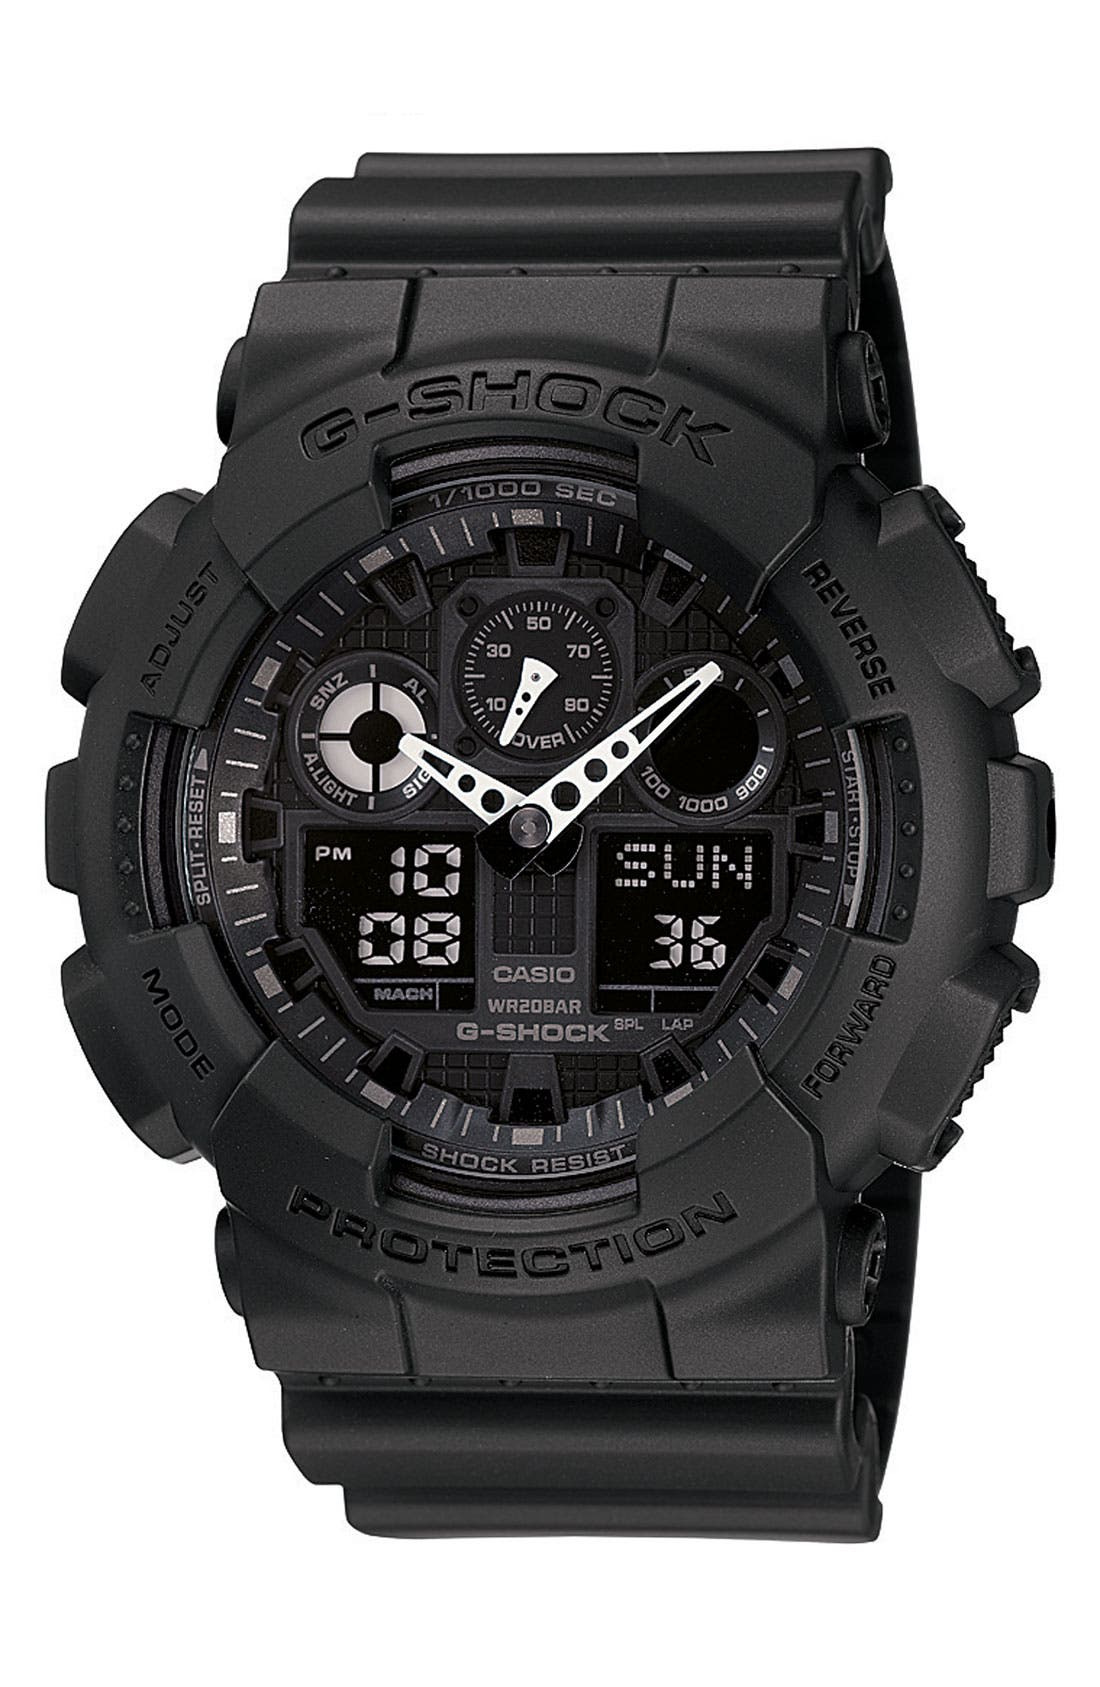 G-SHOCK BABY-G G-Shock 'Big Combi' Watch, 55mm x 51mm, Main, color, BLACK/ BLACK